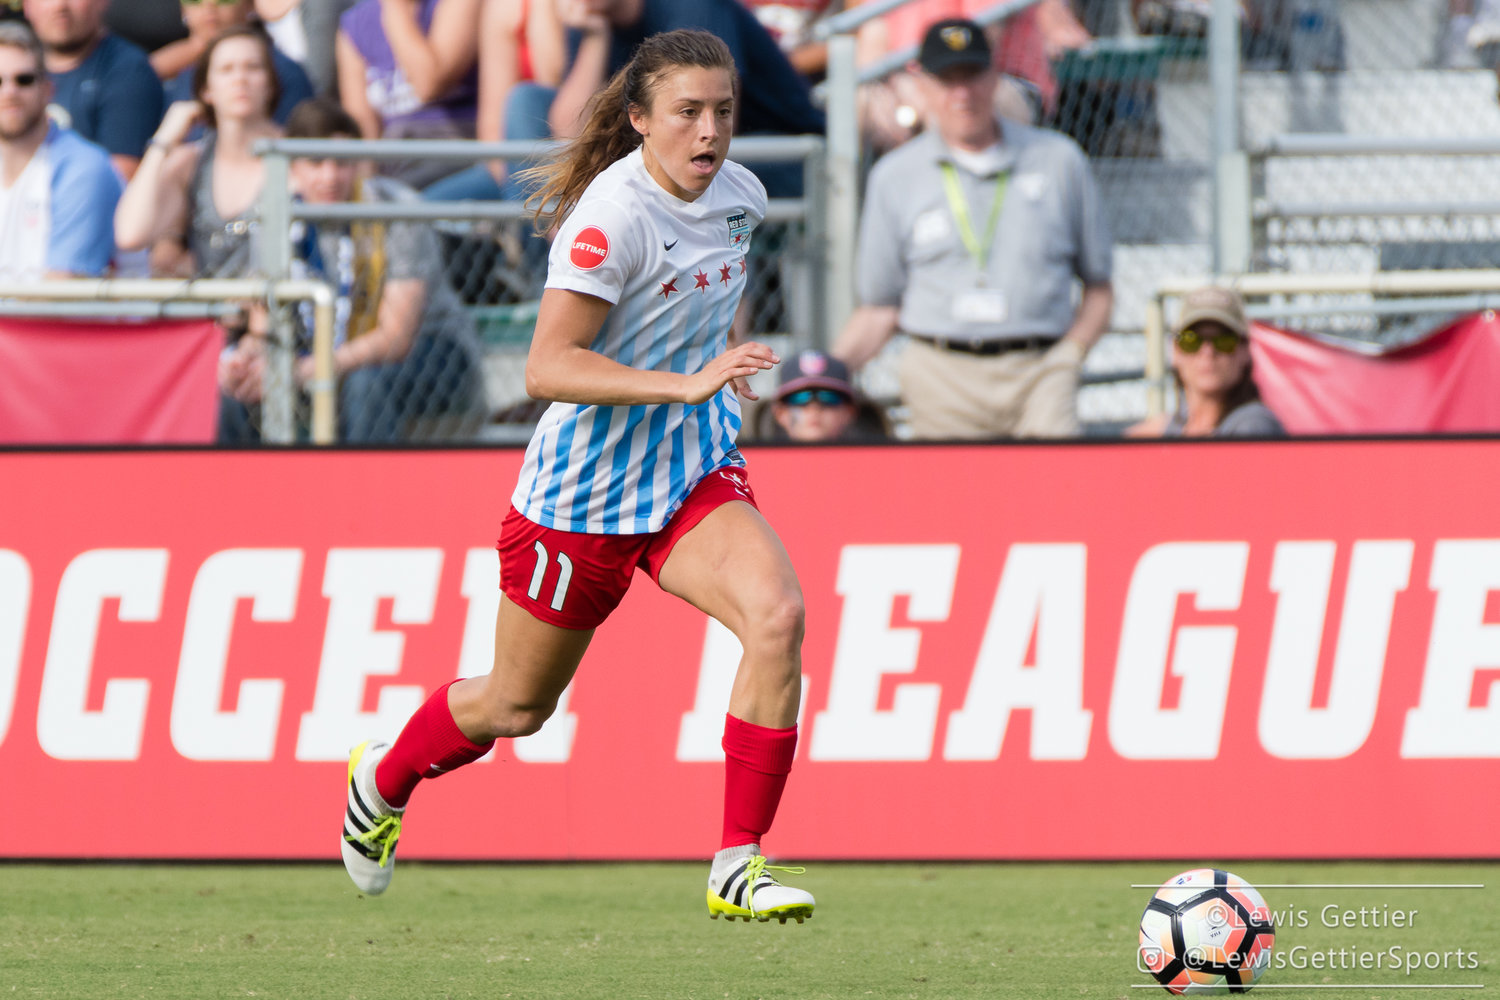 With her goal on Sunday, Sofia Huerta now has two goals and three assists on the season. (photo copyright Lewis Gettier)